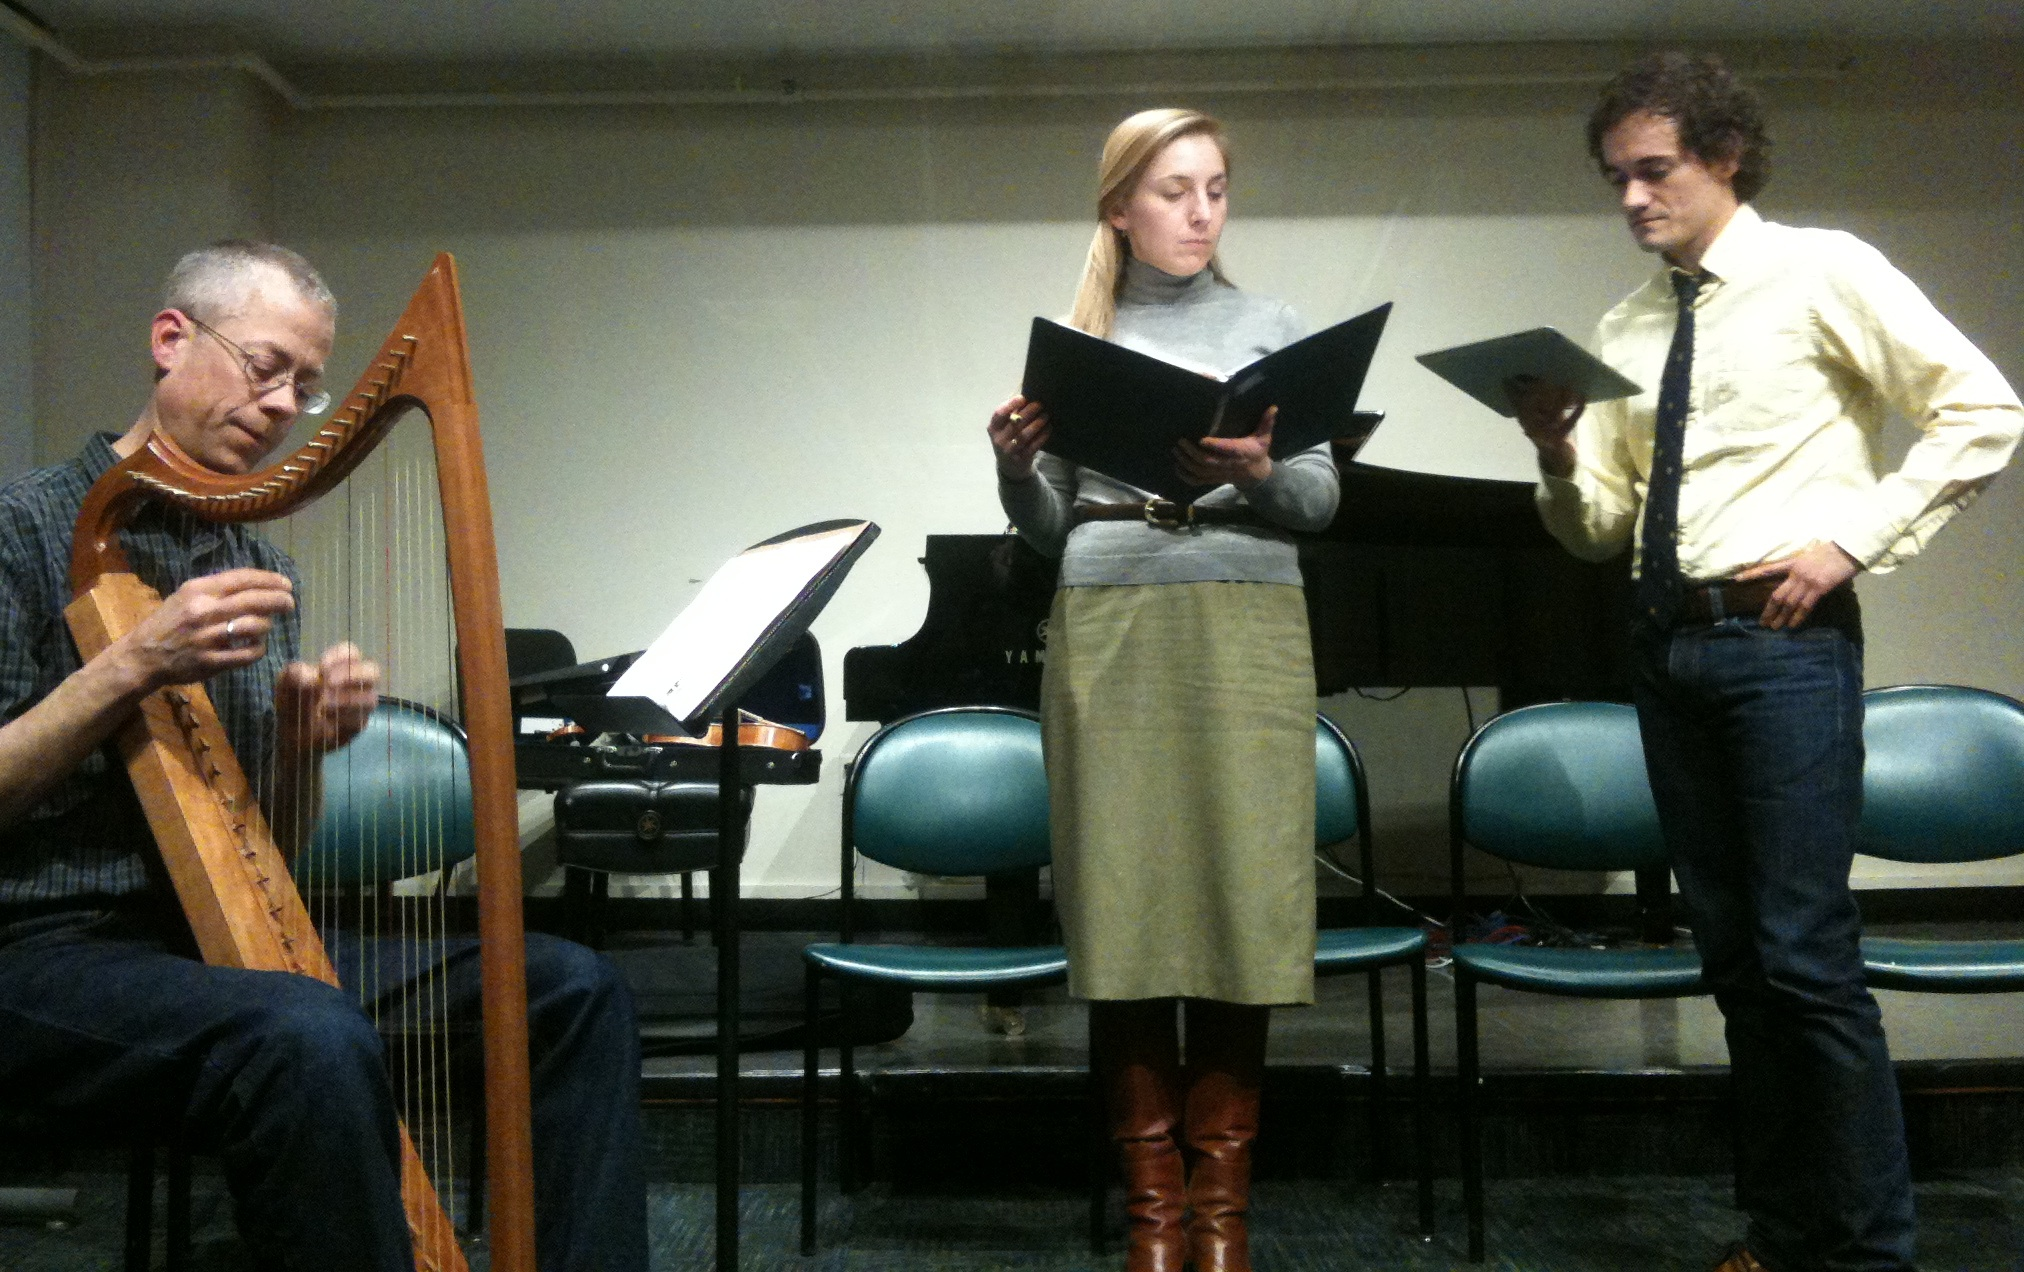 Musicians at the BU Center for Early Music's Performing 15th-Century Song workshop.